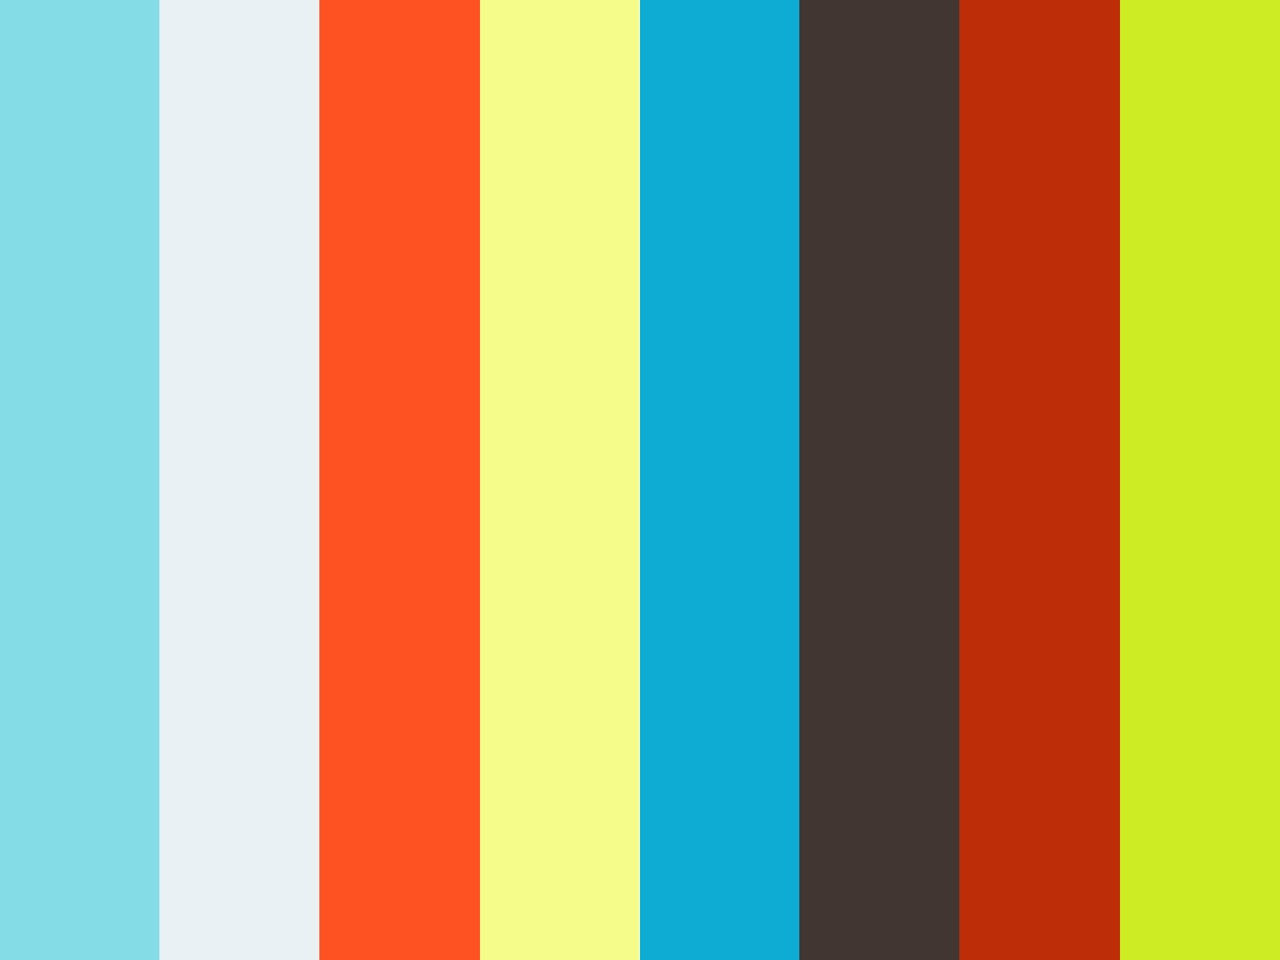 Upper Merion Township Board of Supervisors Meeting July 20, 2017